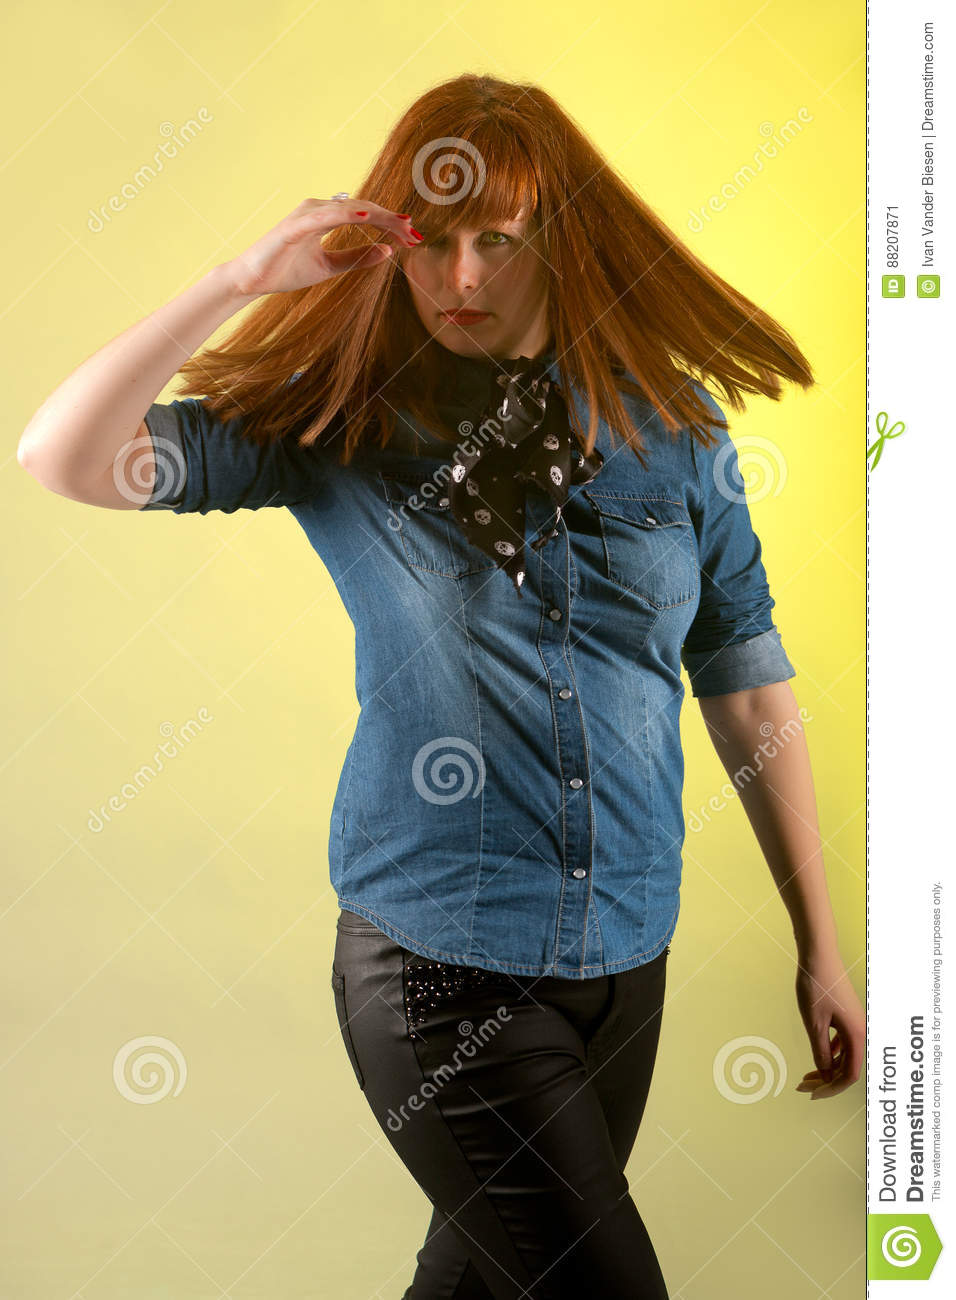 332b734f2acff Redhead woman looking suspicious wearing a blue jeans shirt and black  leather trousers with long hair waving due to her turn looking in the  camera on a ...